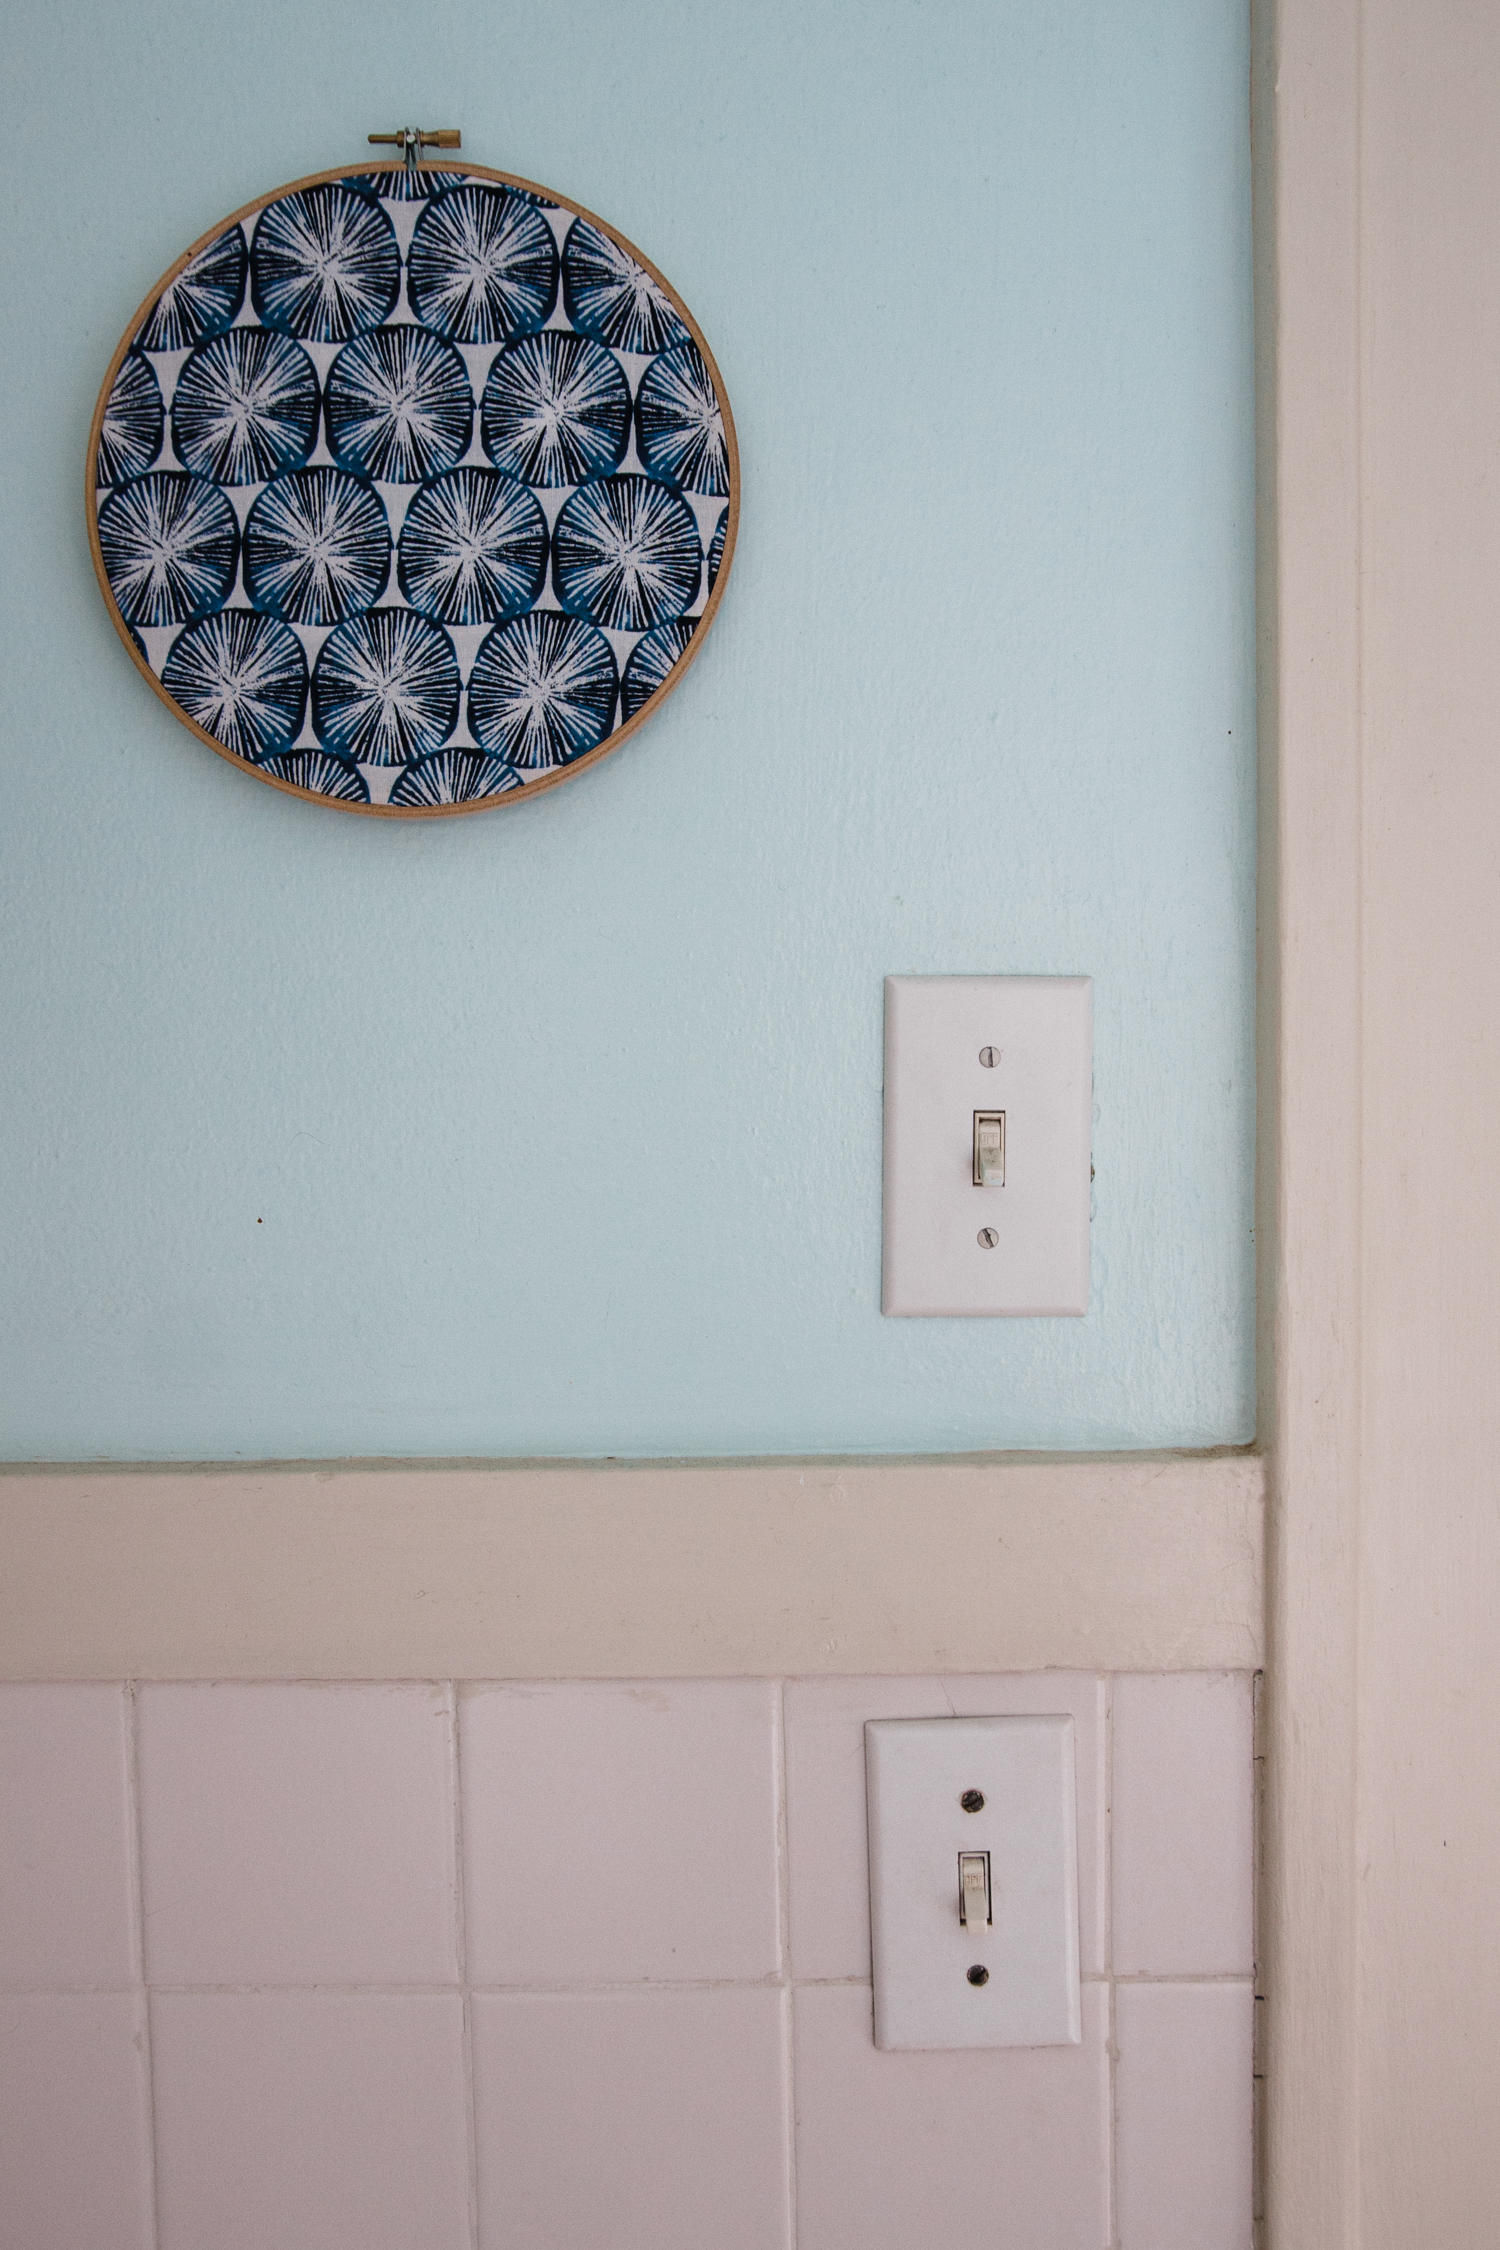 Emily uses Owl & Drum fabric in an embroidery hoop as artwork in her bathroom.